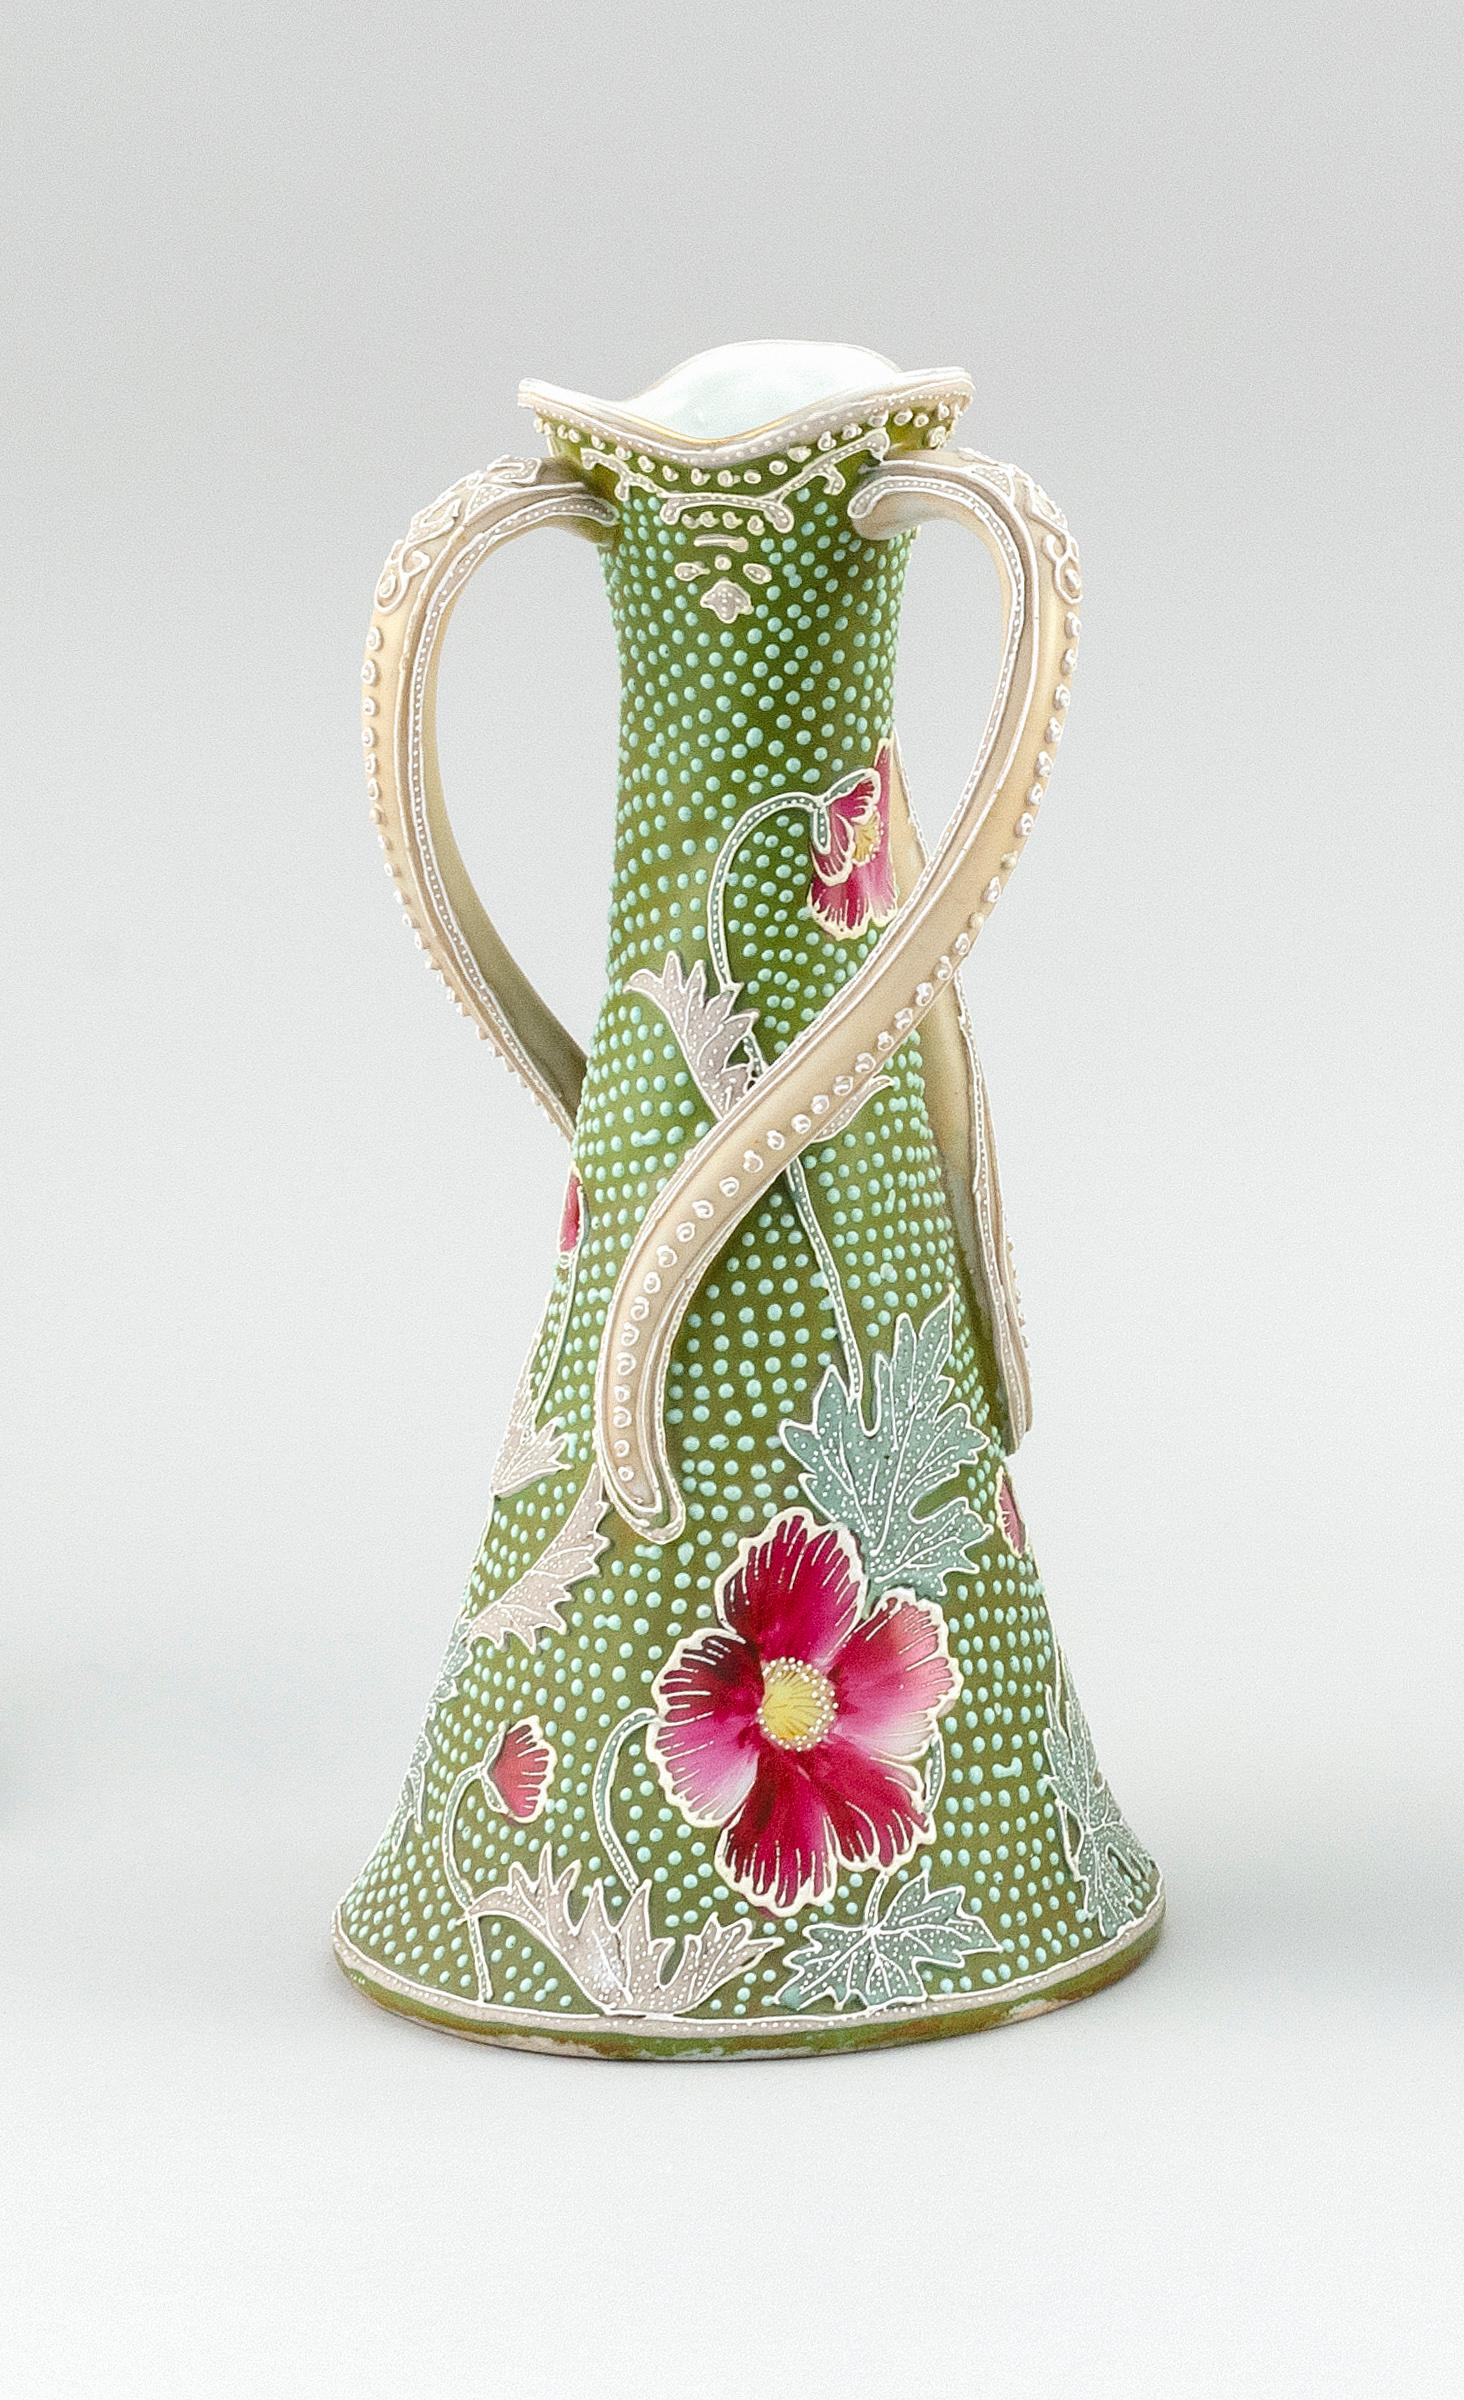 "MORIAGE NIPPON PORCELAIN VASE Conical, with three twisting handles and a floral design. Spotted with jewel-like markings. Height 10""."